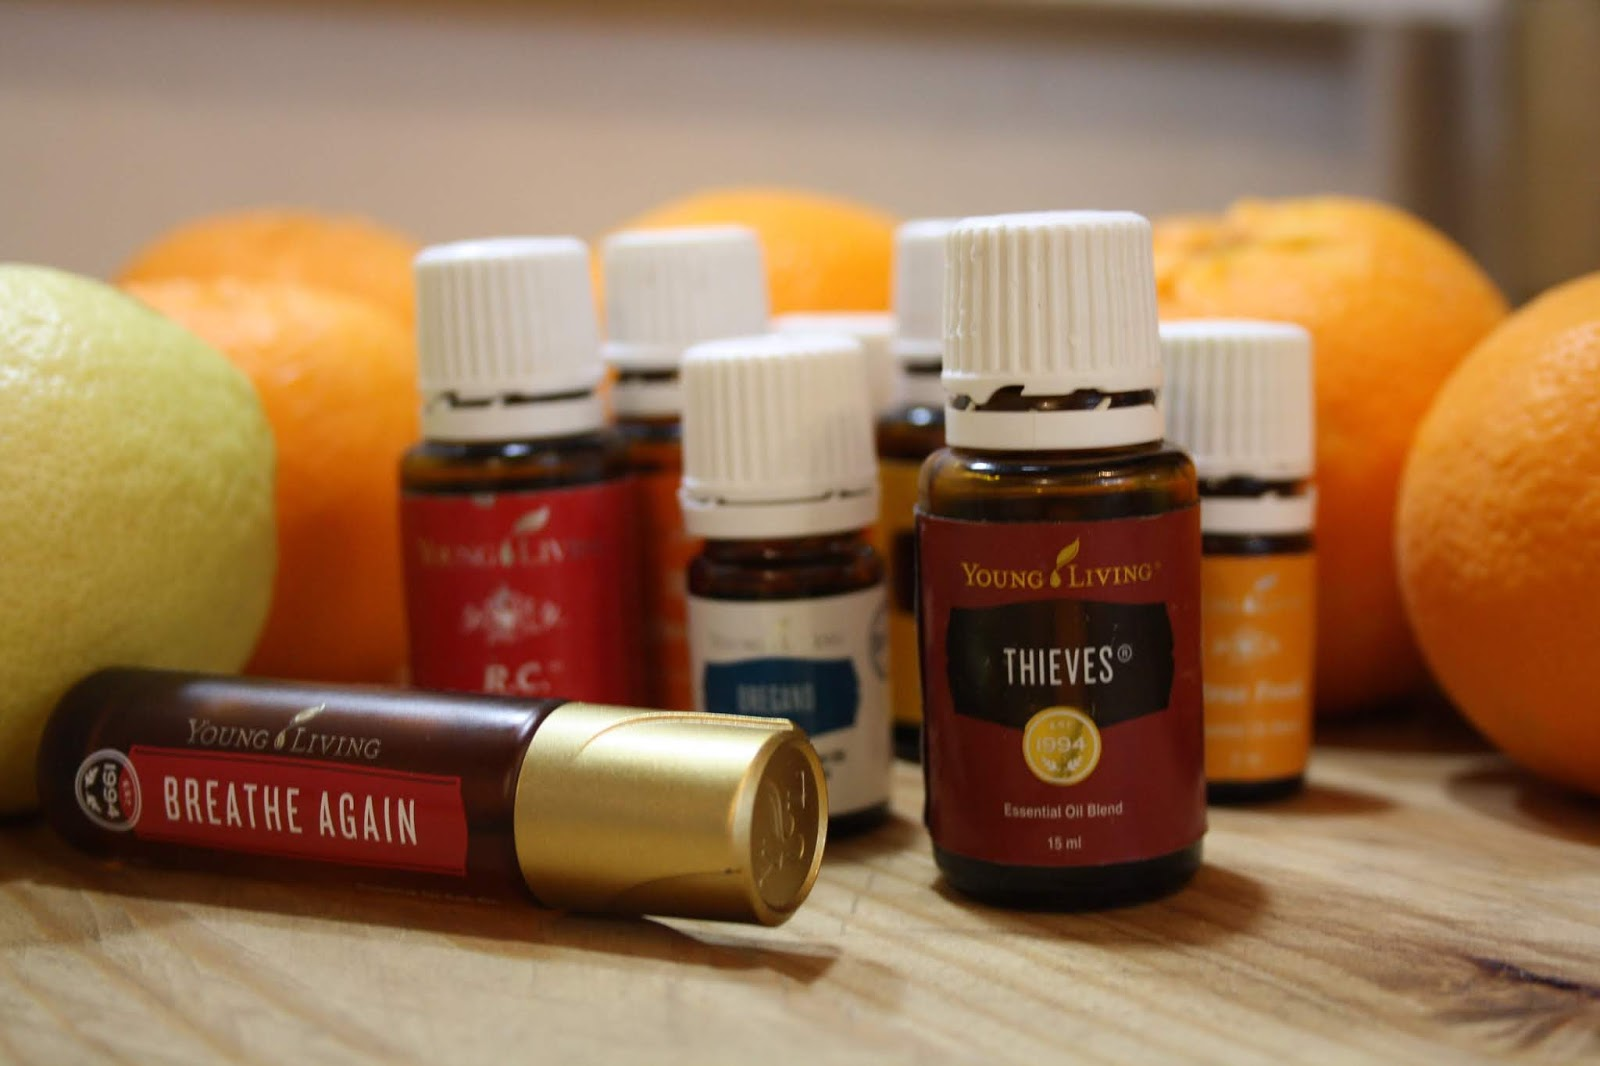 My favorite essential oils for winter